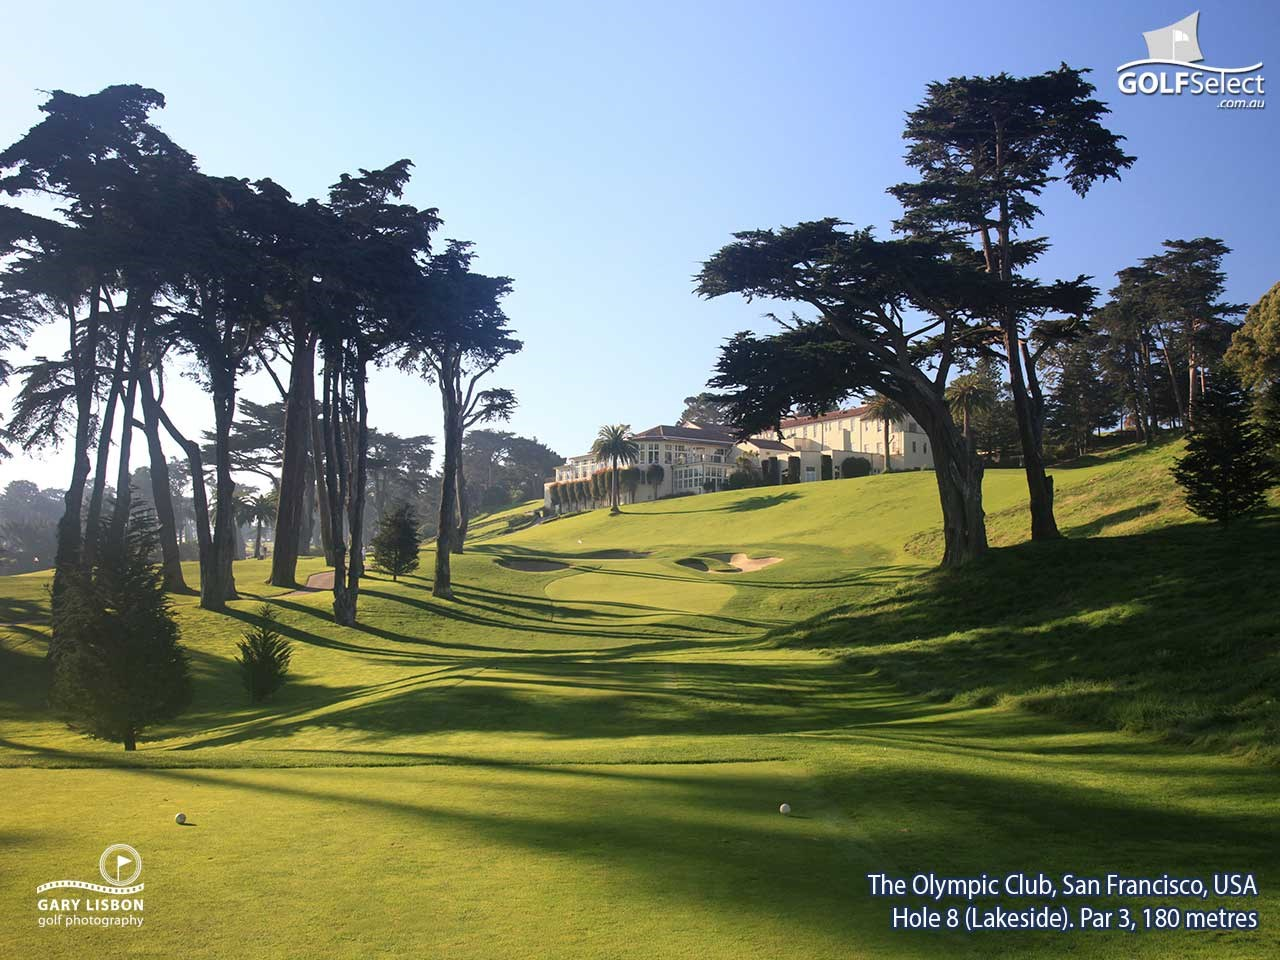 Course List For California Can Be Found Here